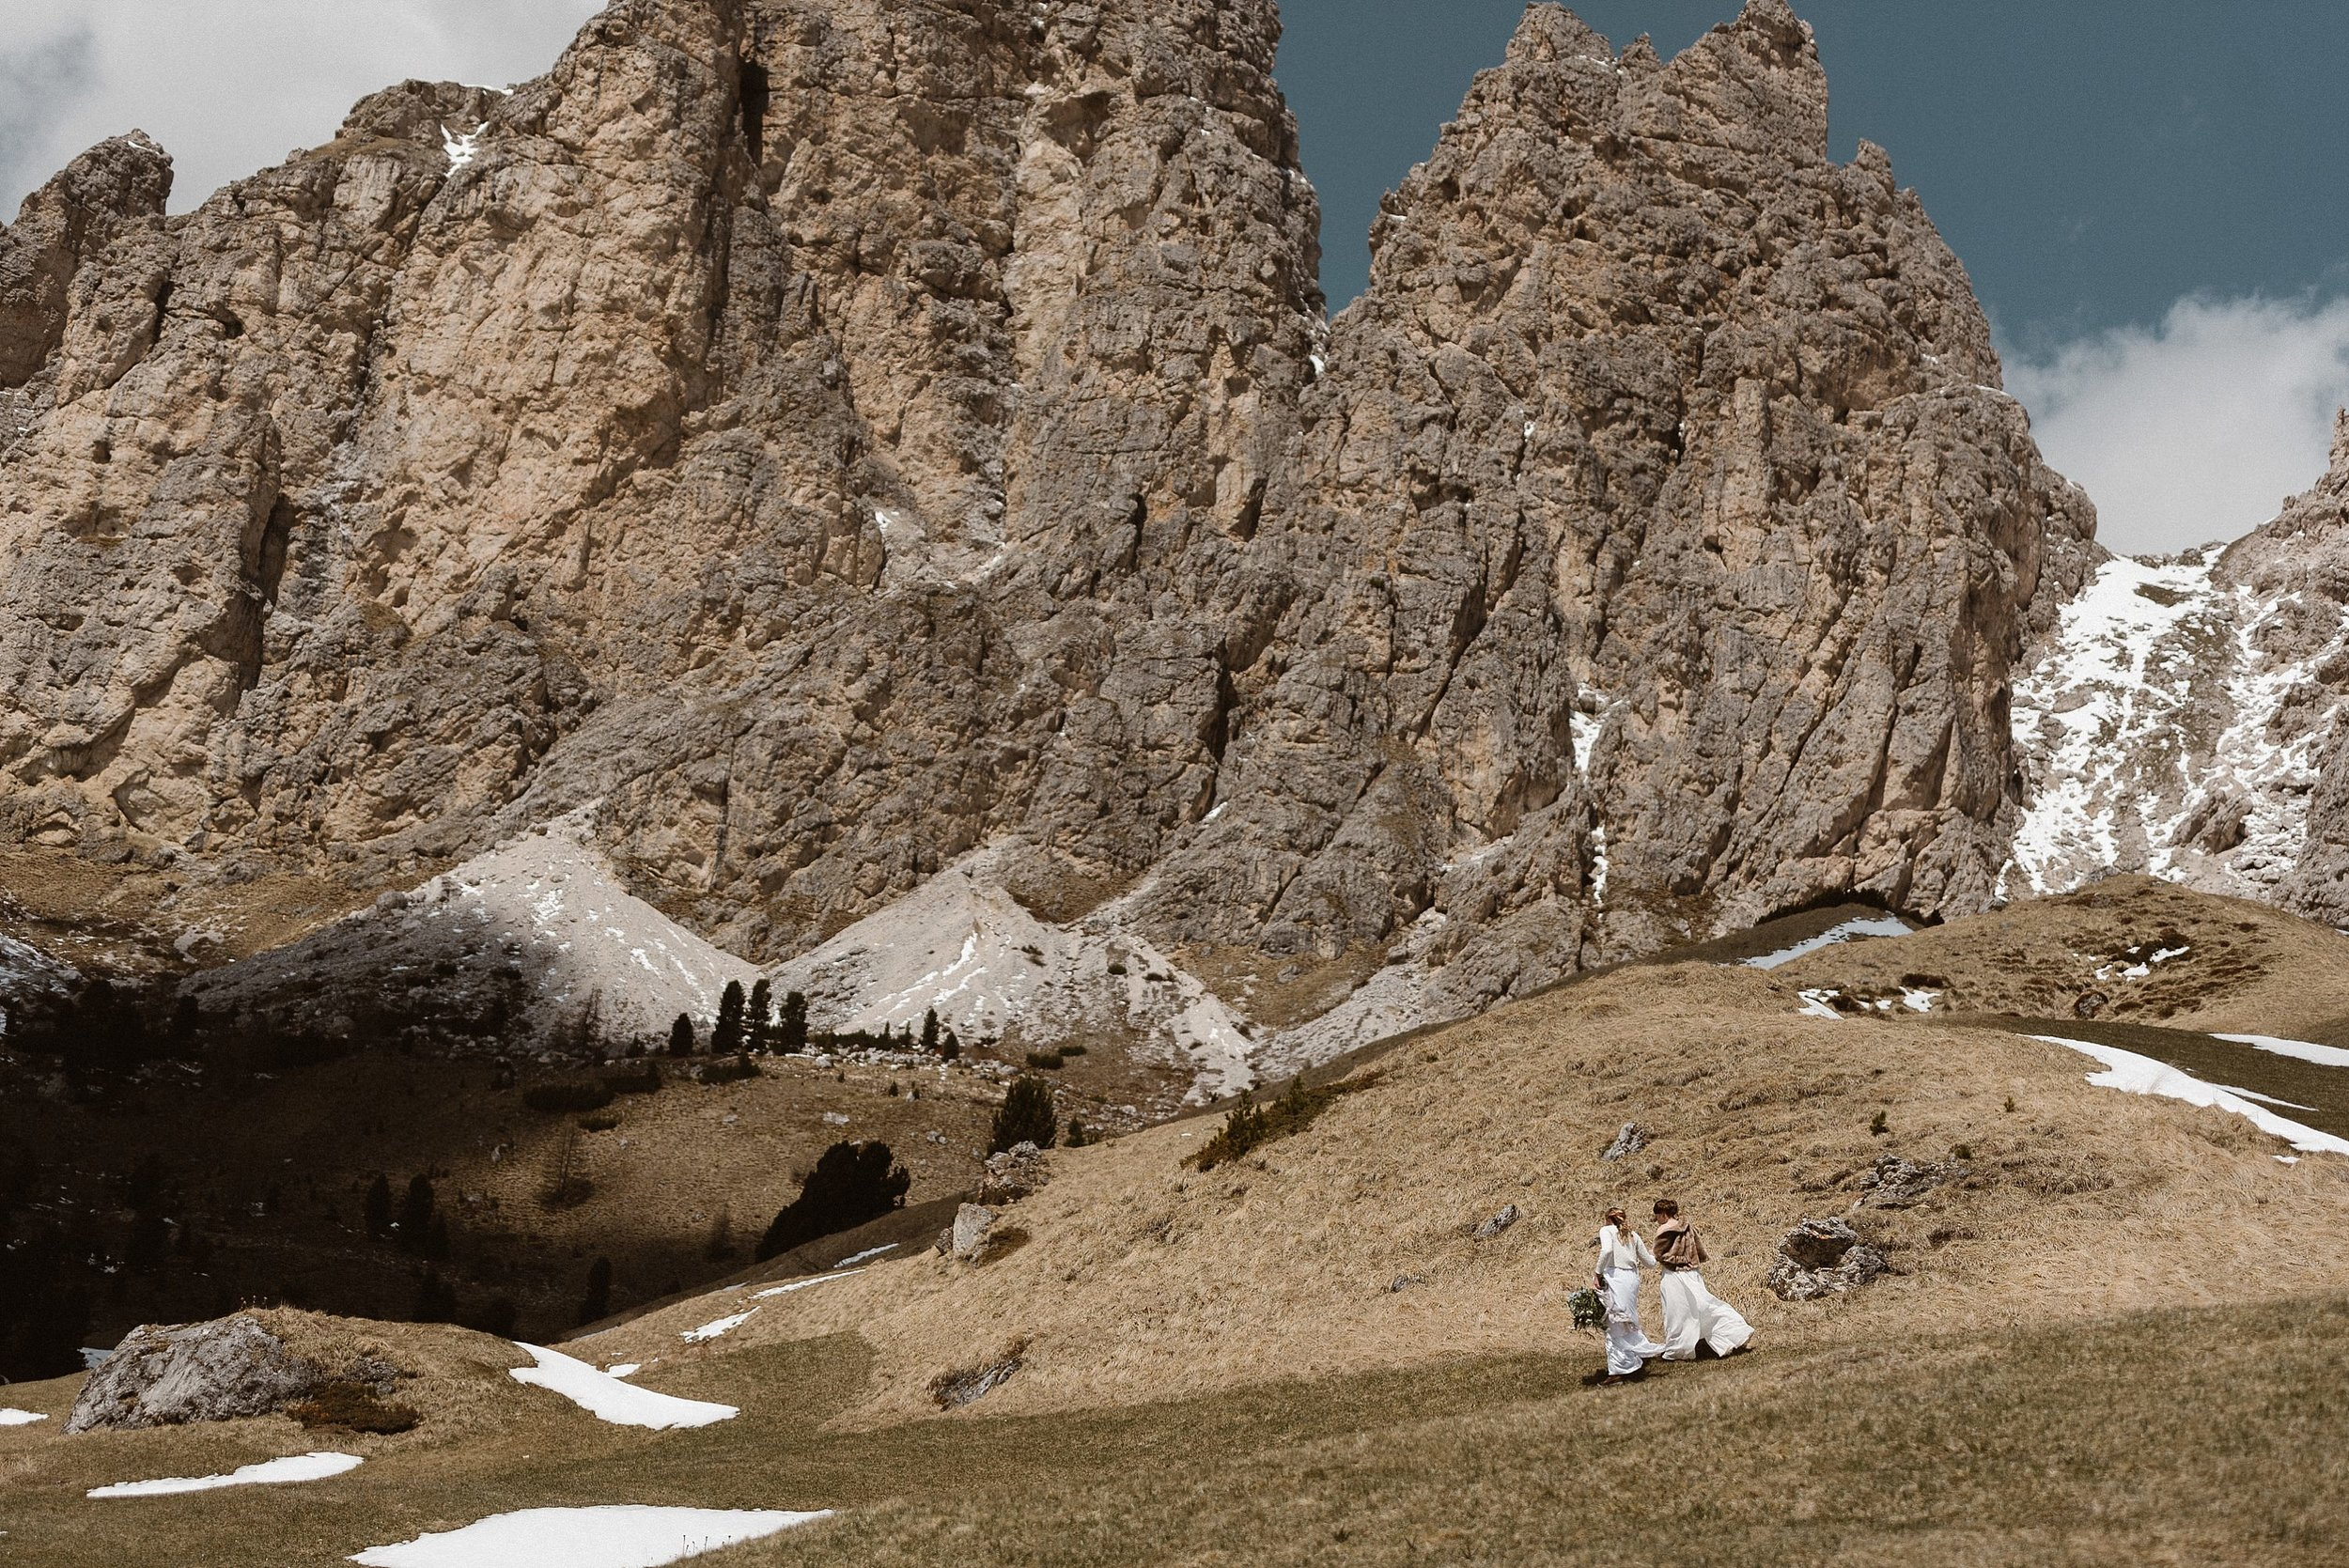 There are few things as simply sweet as a long and loving embrace surrounded by snow and jagged rocks in the Italian Dolomite mountains where these brides picked for their intimate elopement ceremony. Photos by traveling wedding photographer Maddie Mae.